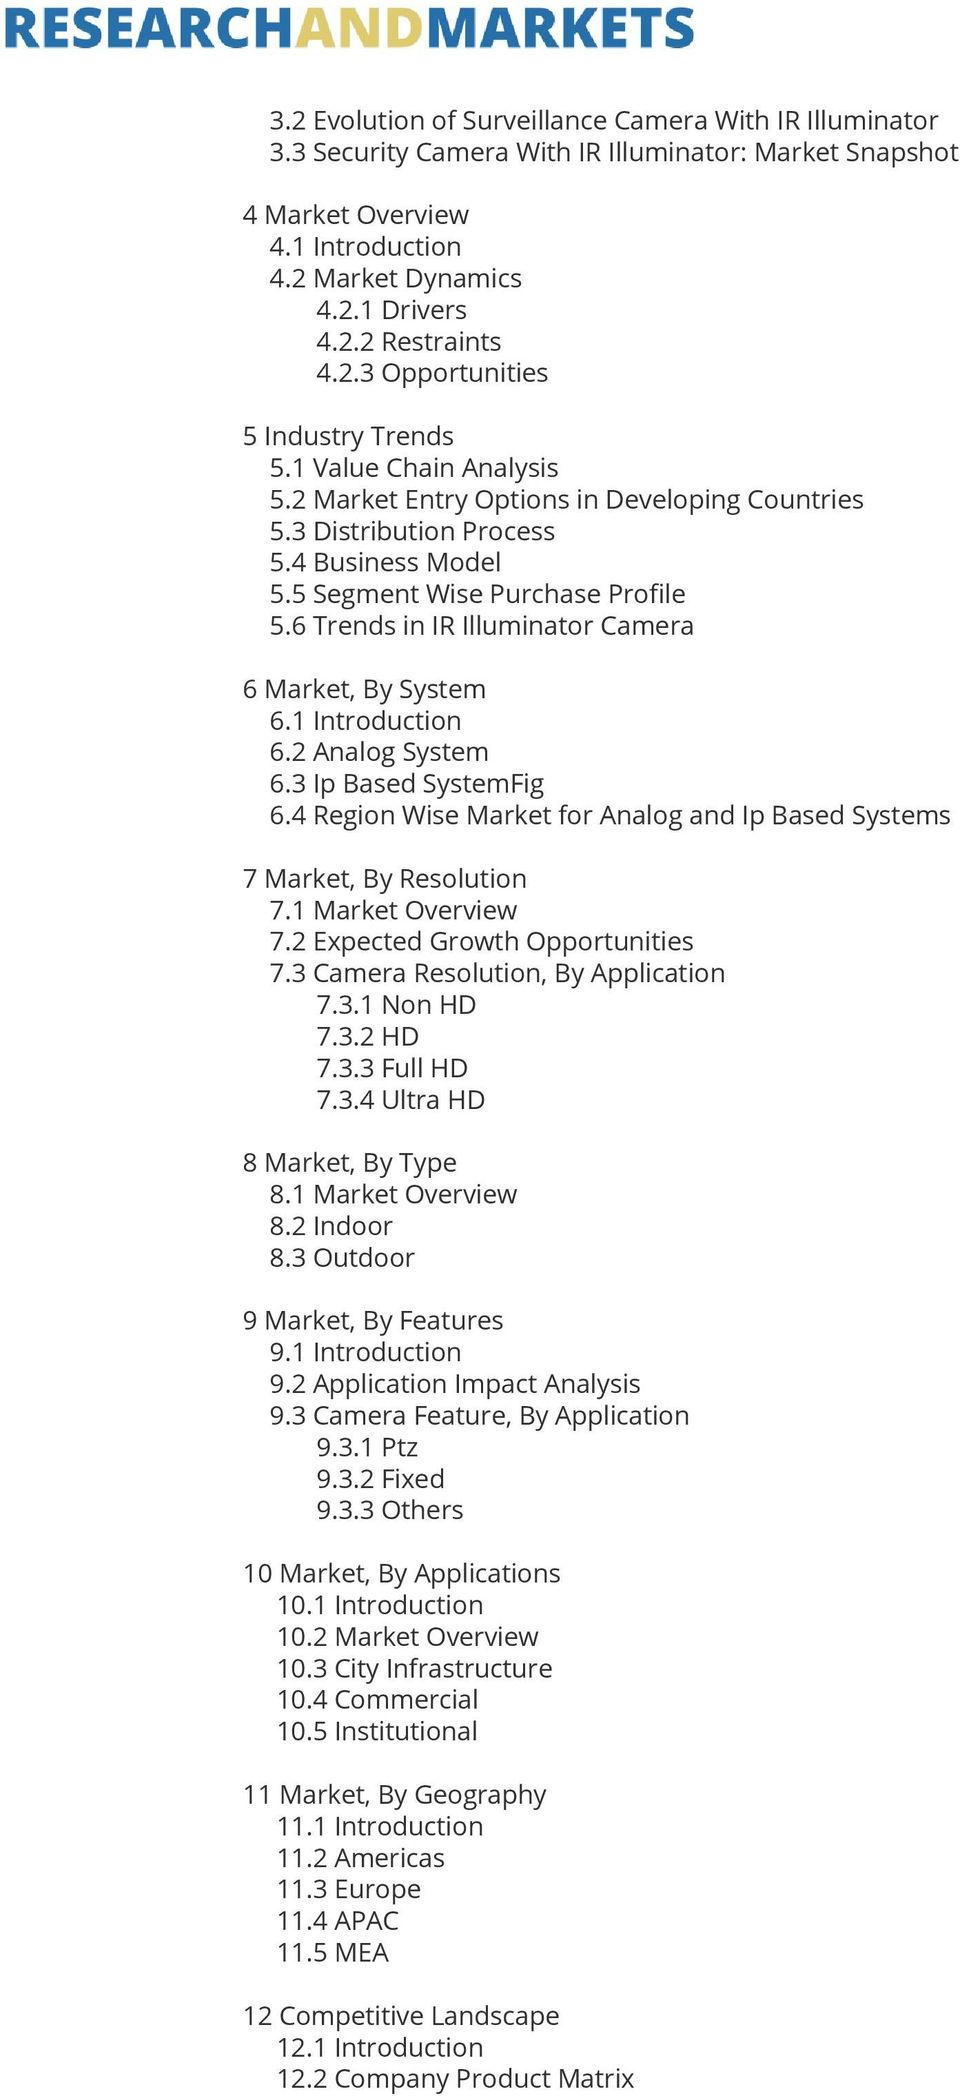 6 Trends in IR Illuminator Camera 6 Market, By System 6.1 Introduction 6.2 Analog System 6.3 Ip Based SystemFig 6.4 Region Wise Market for Analog and Ip Based Systems 7 Market, By Resolution 7.